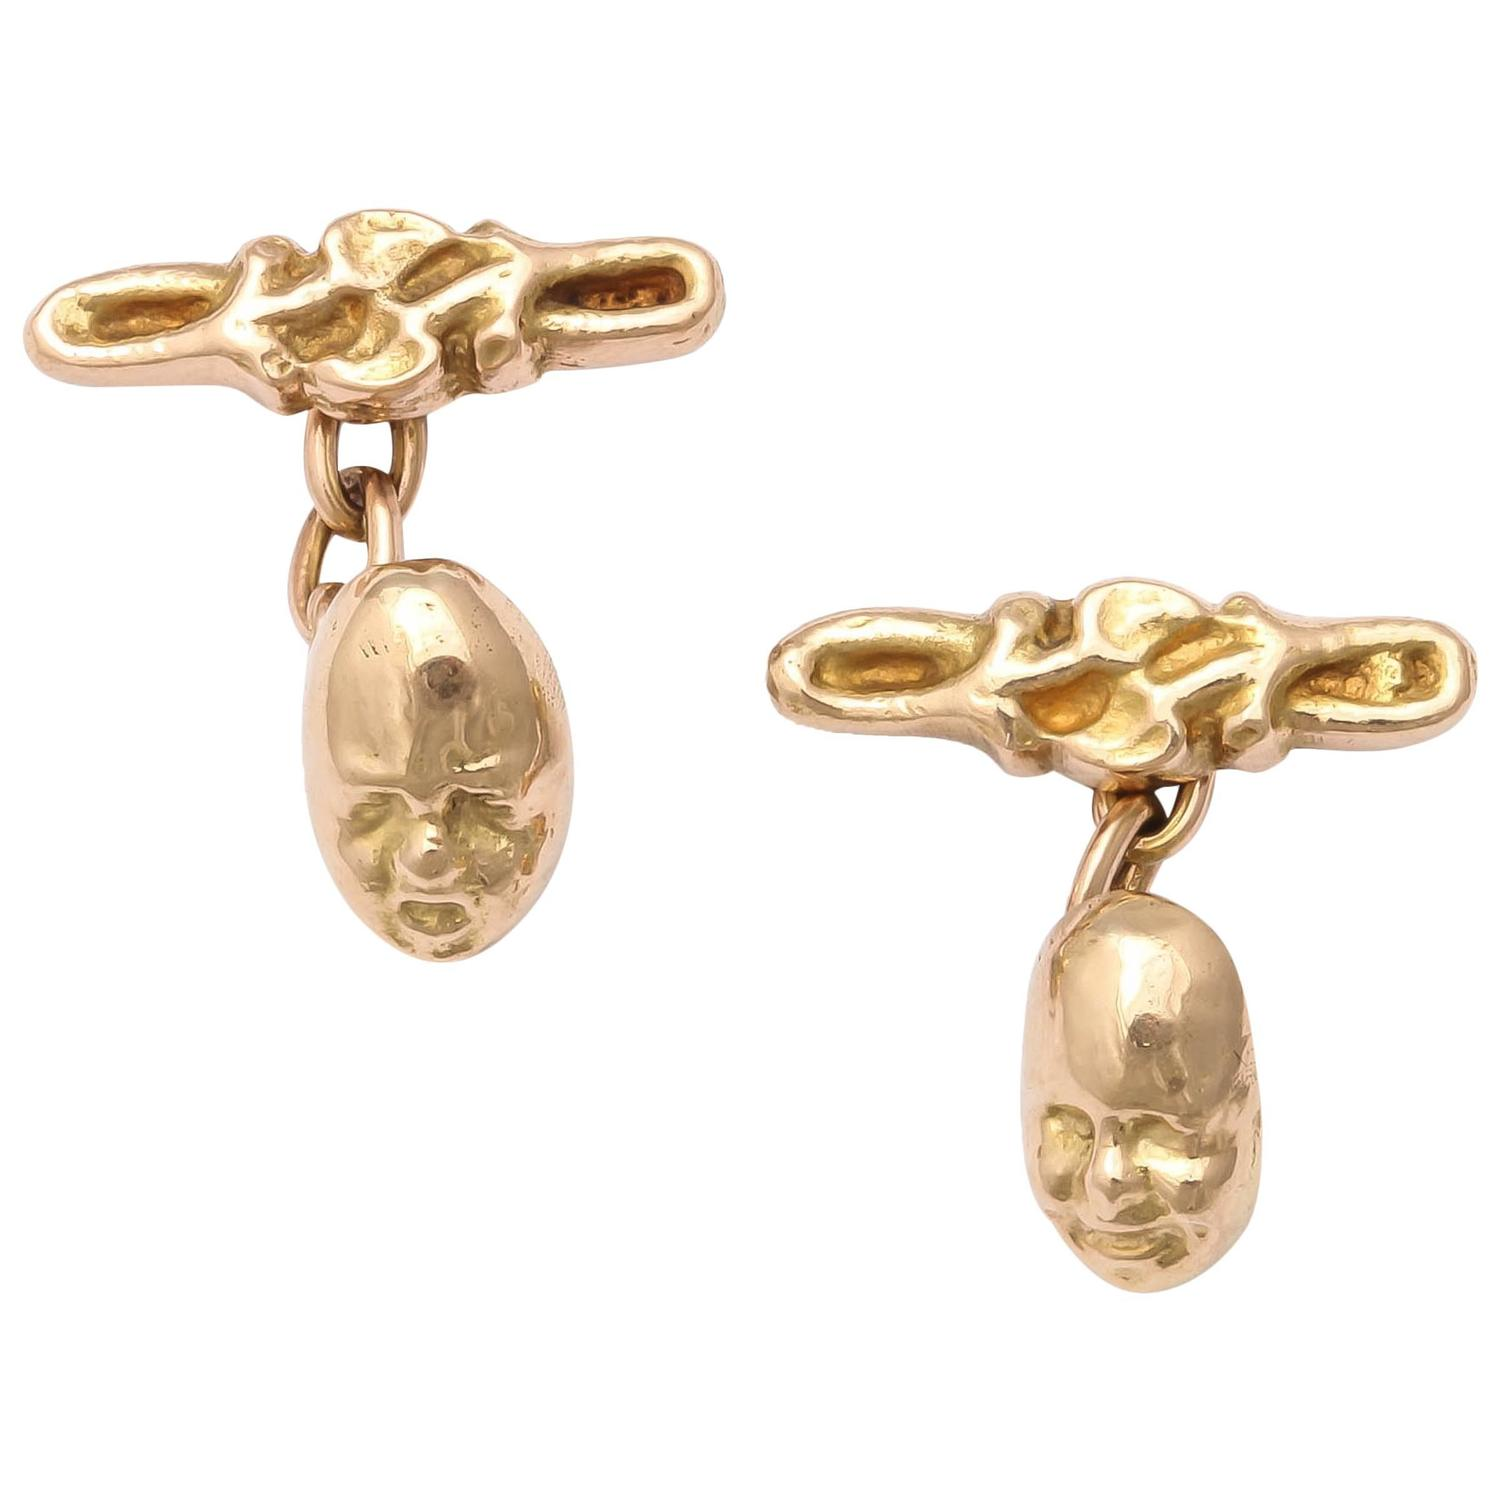 Gold Tragedy and Comedy Cufflinks, 19th century 1